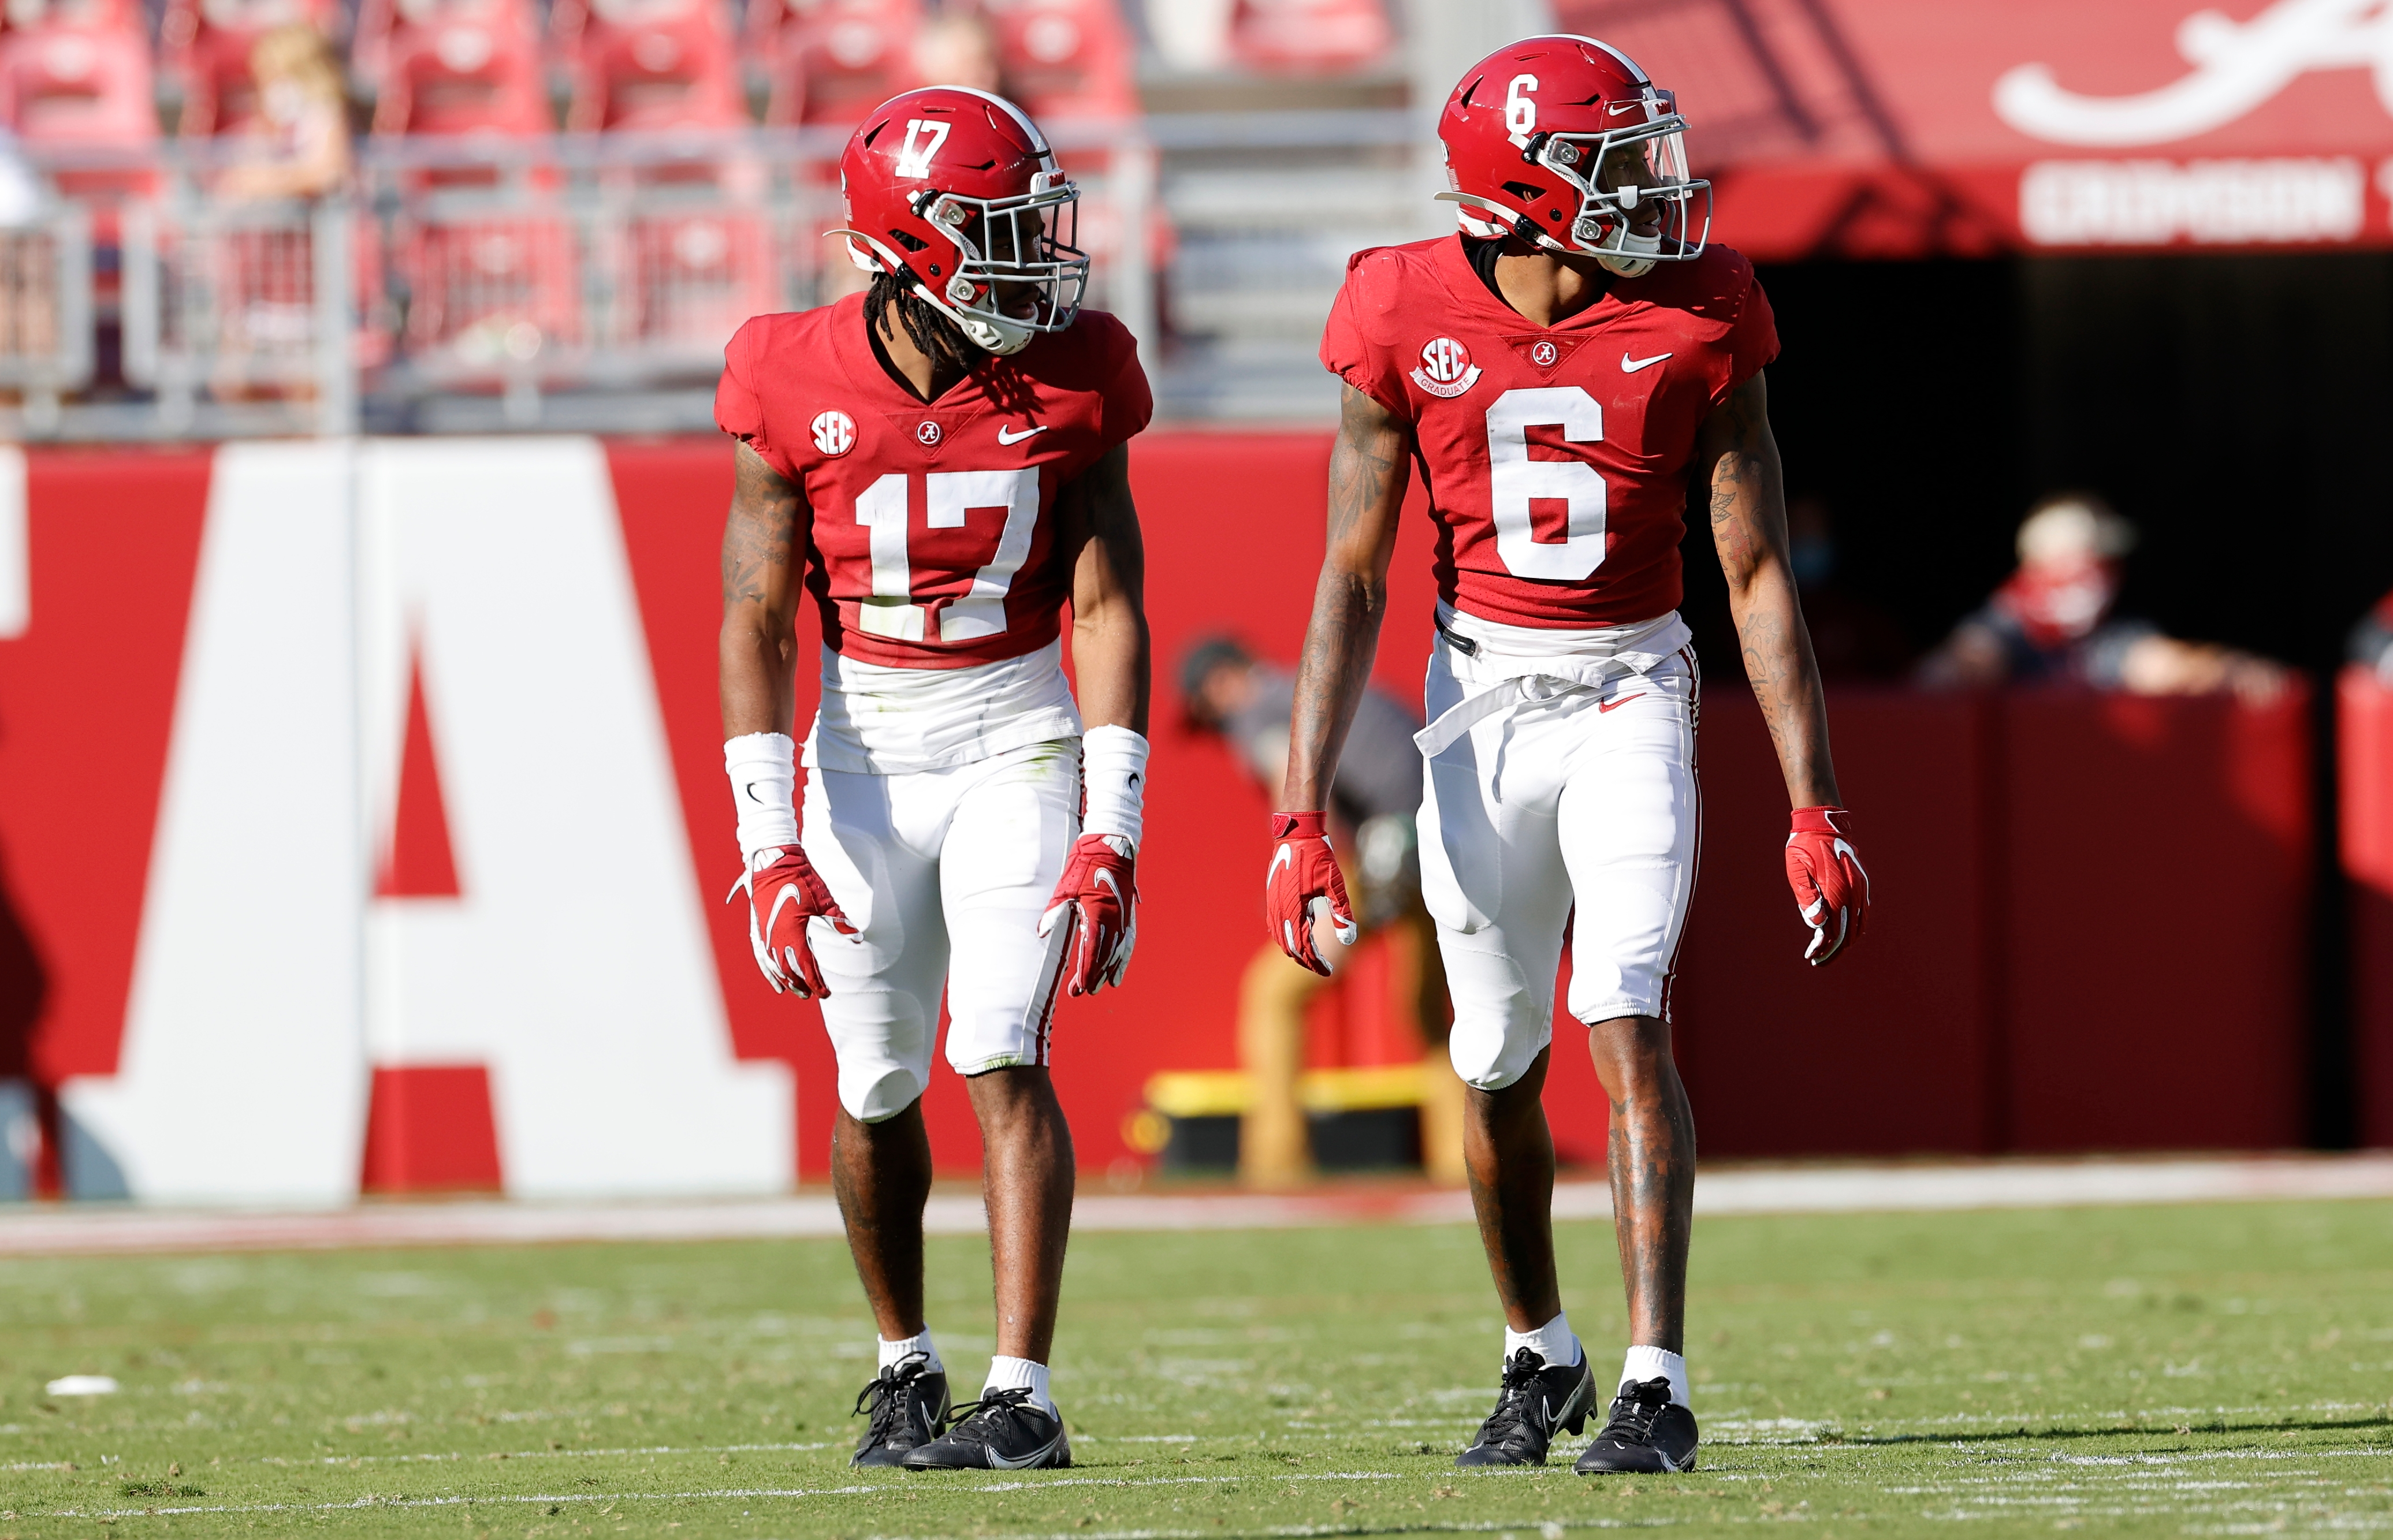 Image result for jaylen waddle devonta smith, who could be Patriots draft targets should they fall